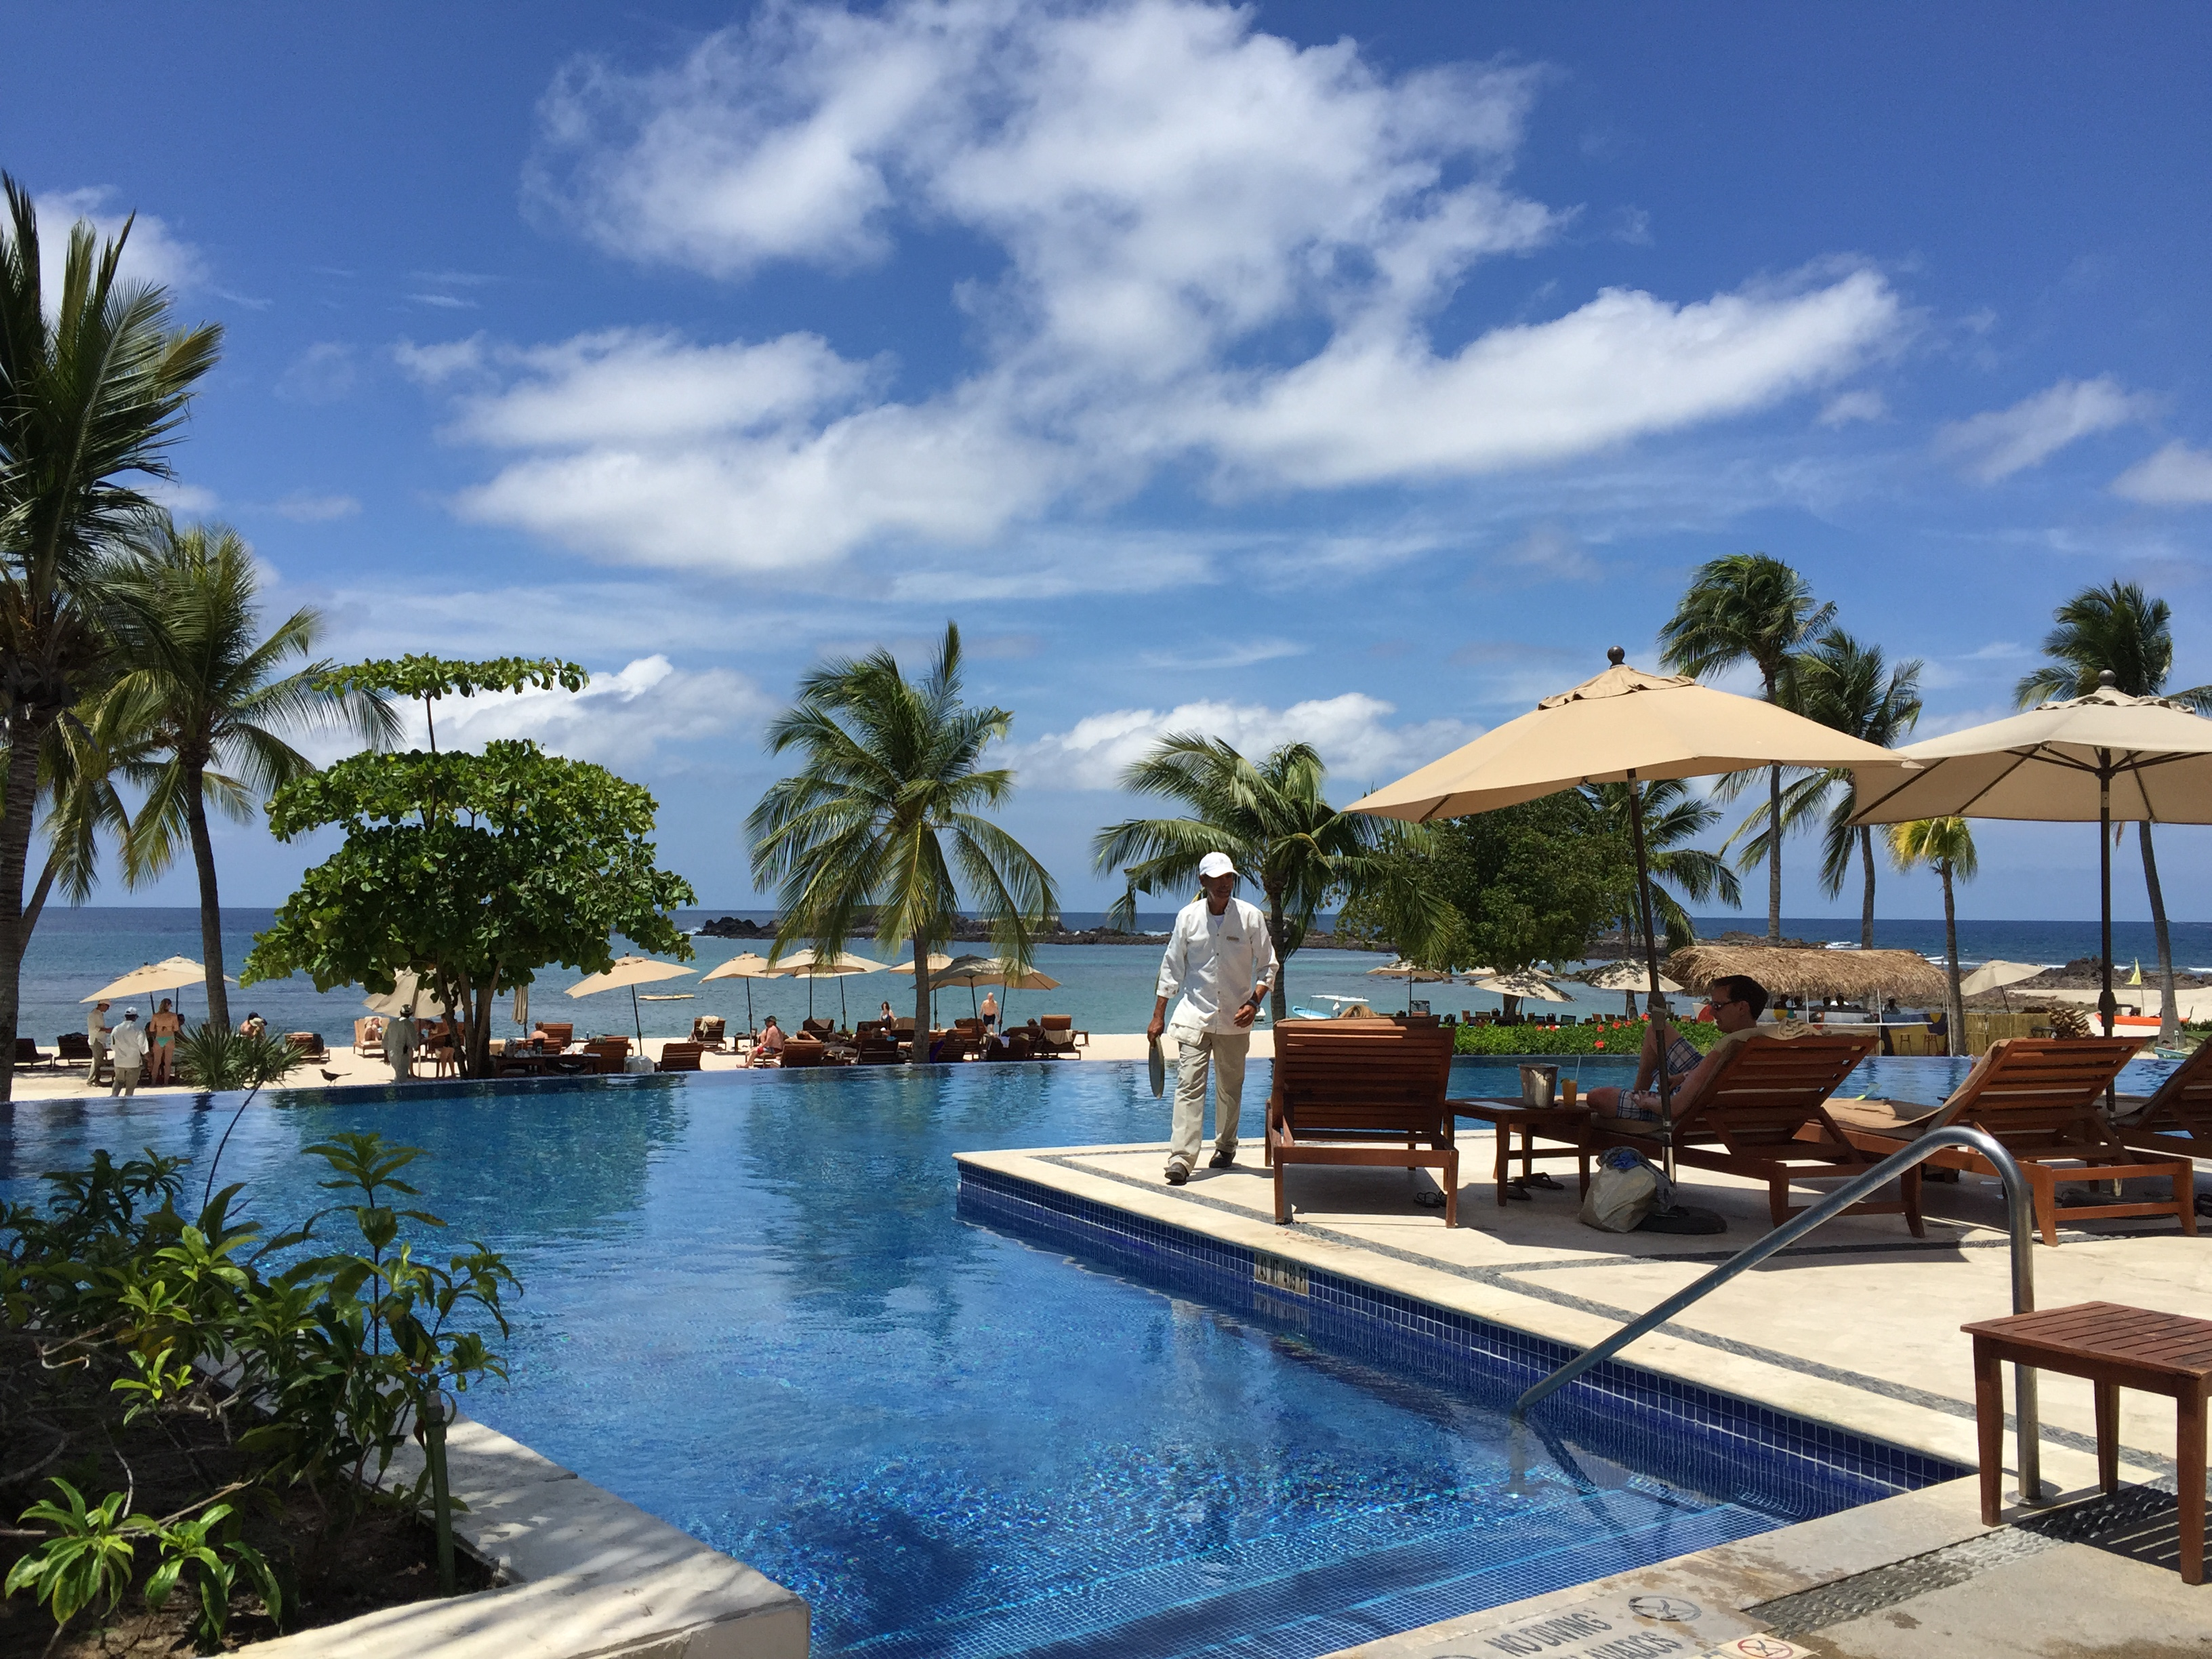 St regis punta mita haute holidays travel for St regis